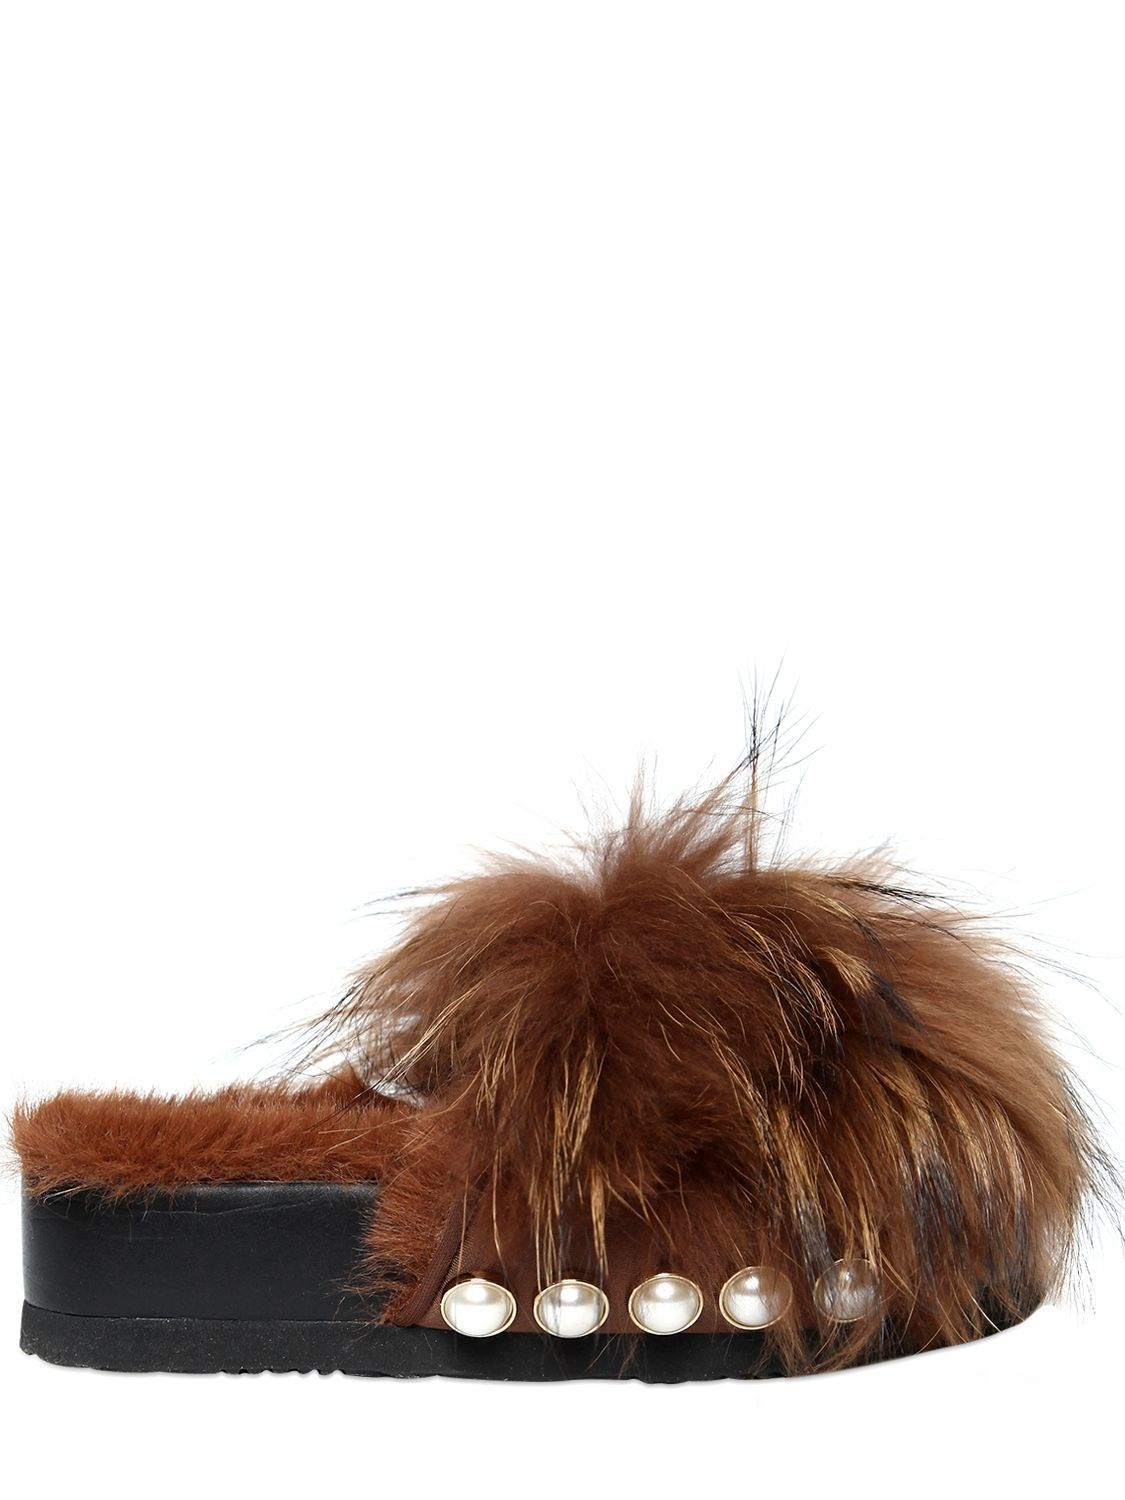 SUECOMMA BONNIE 50MM FUR PLATFORM SLIDE SANDALS W/ STUDS